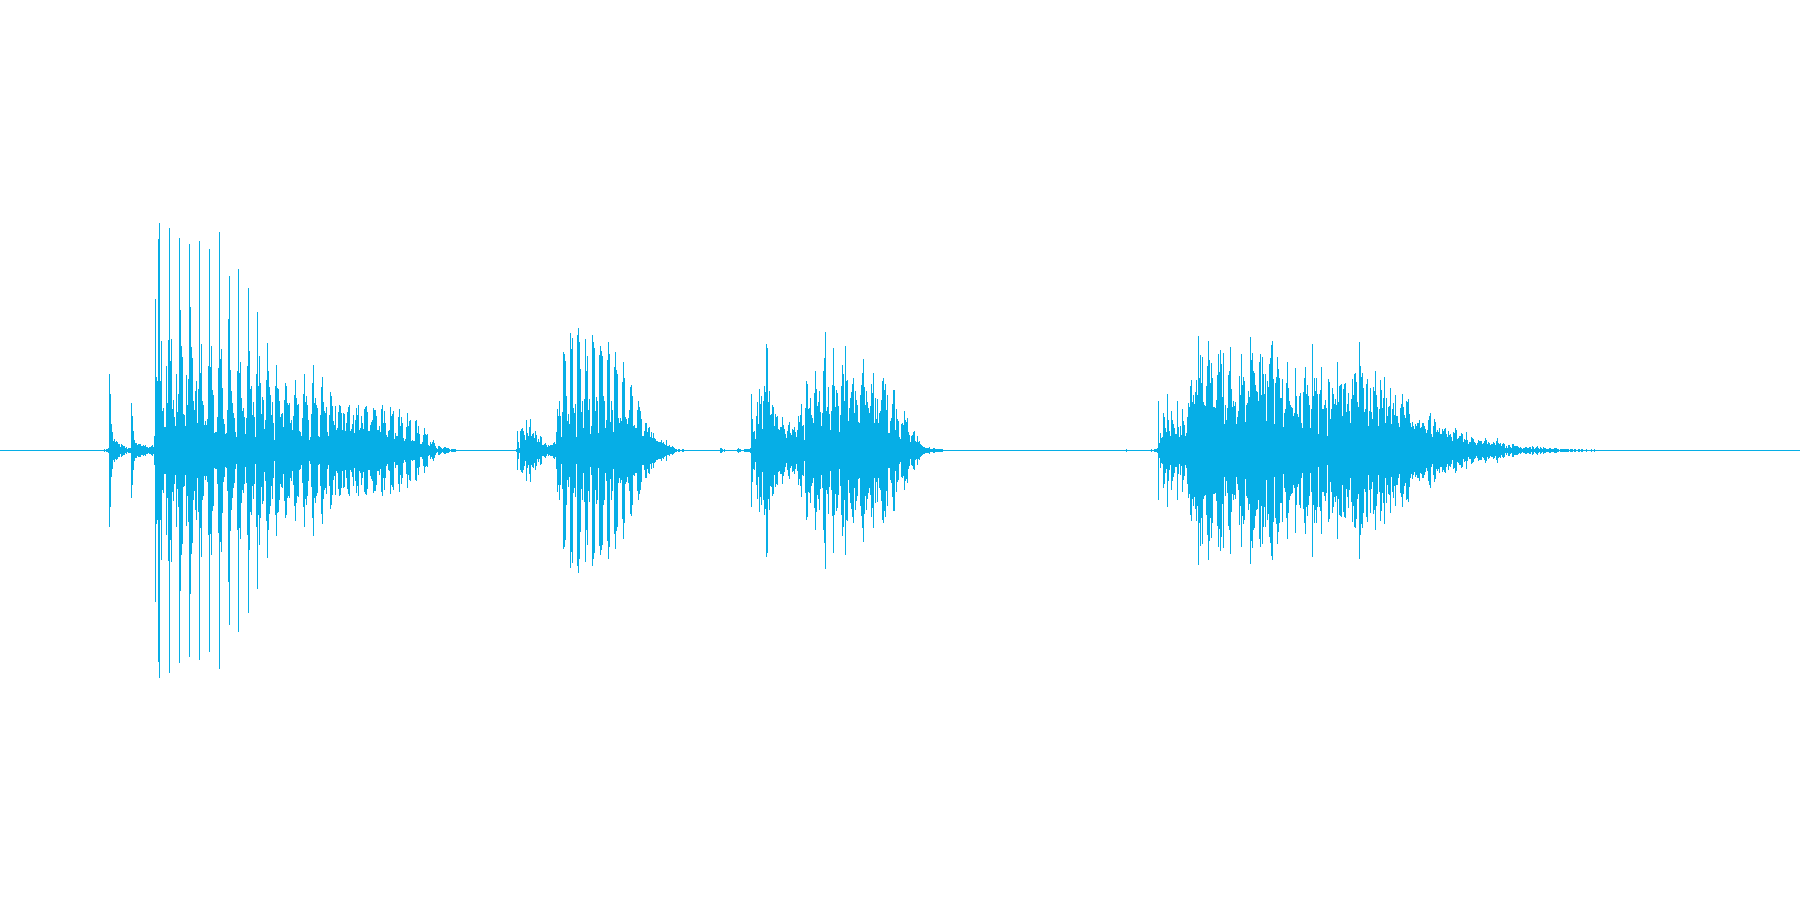 Did you want to meet (Woman)'s reproduced waveform